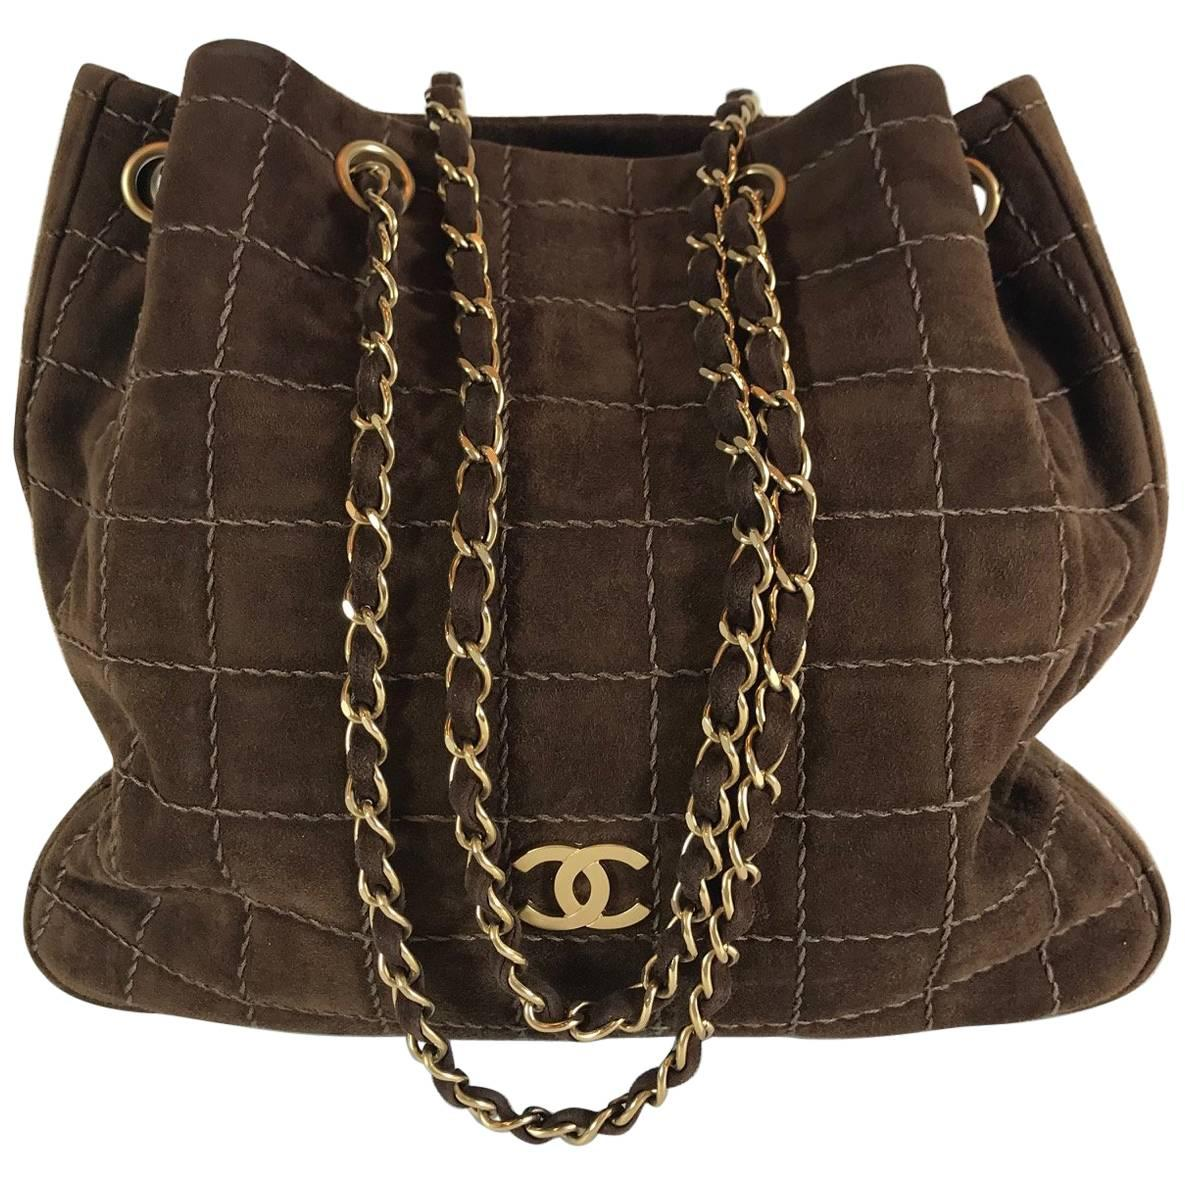 Chanel Suede Quilted Tote For Sale at 1stdibs